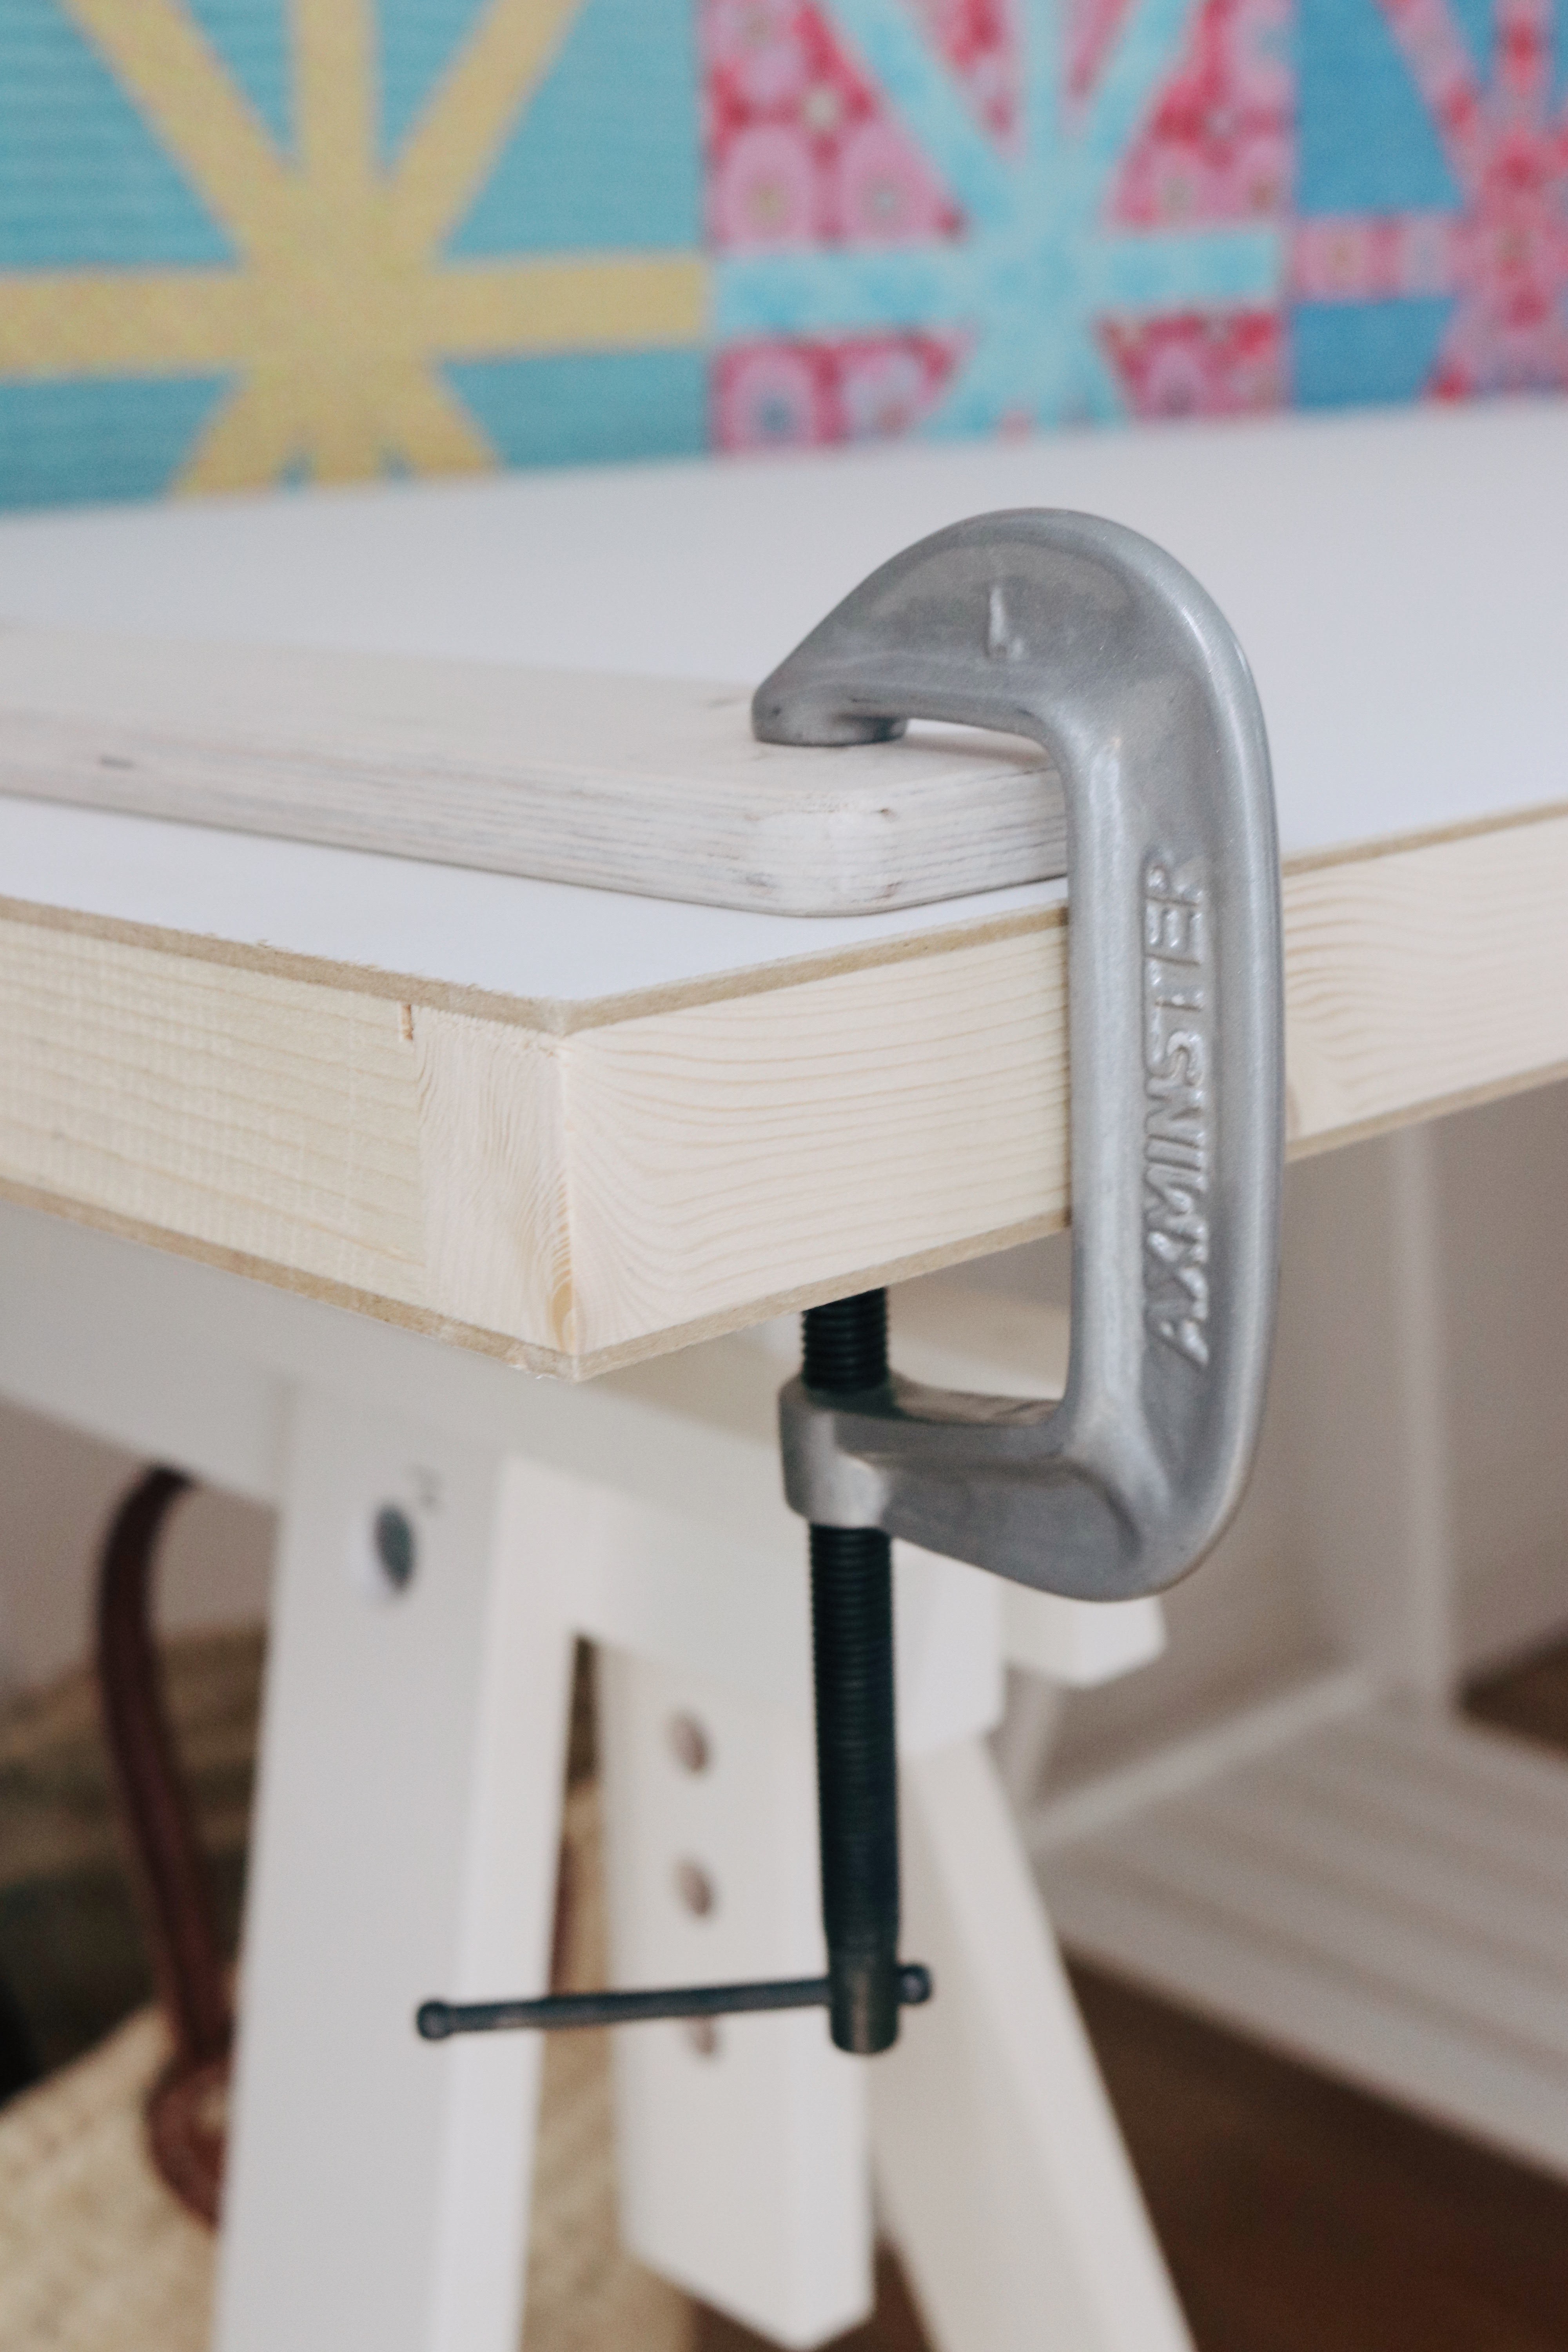 Machine Quilter frames clamp to the table